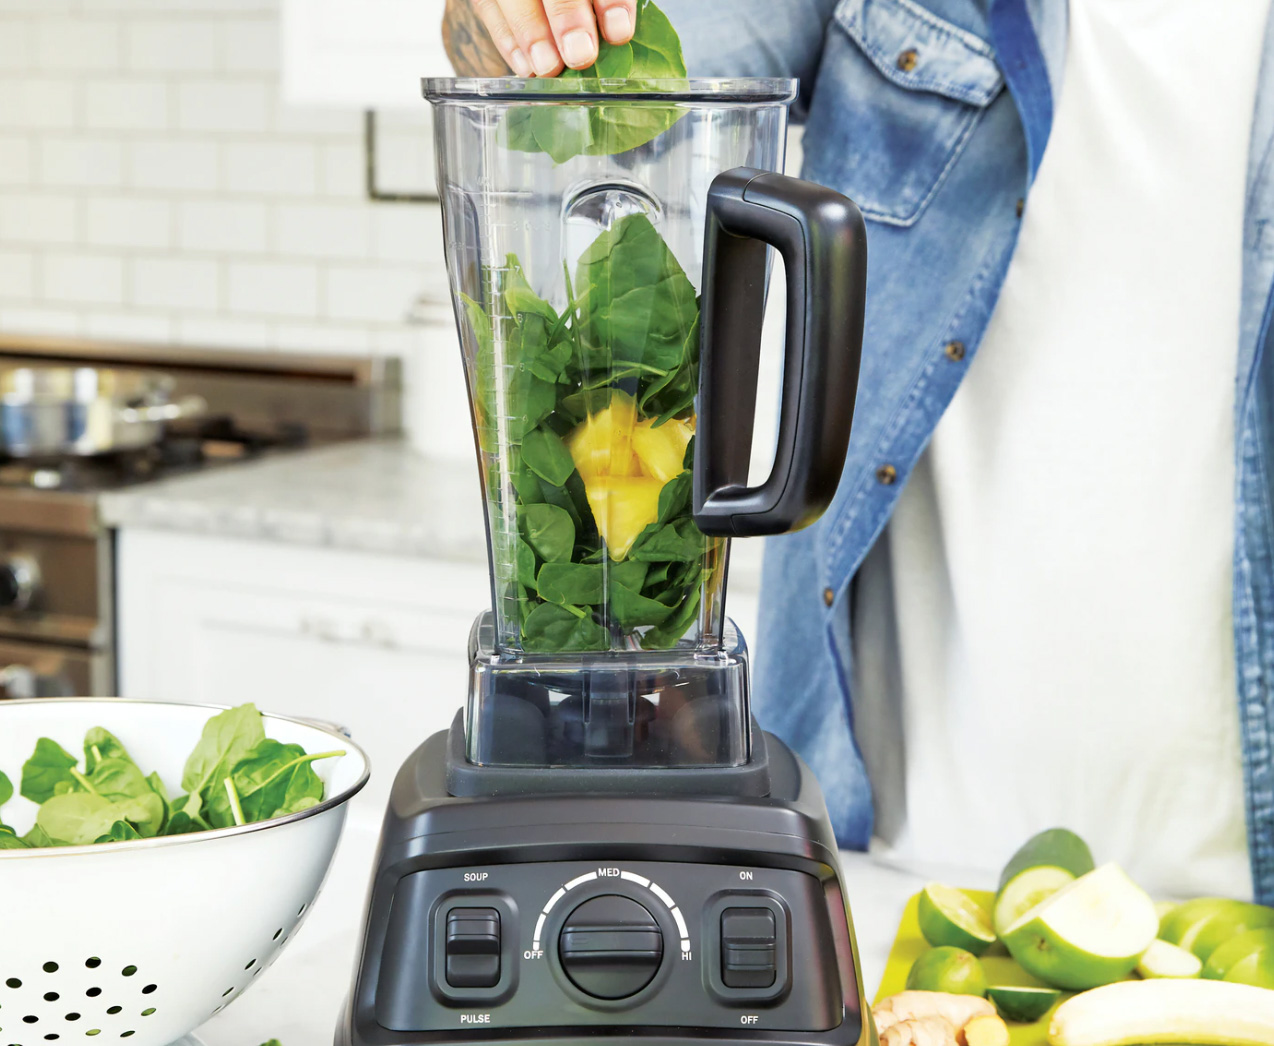 Blender with spinach and fruit to make a smoothie or detox drink